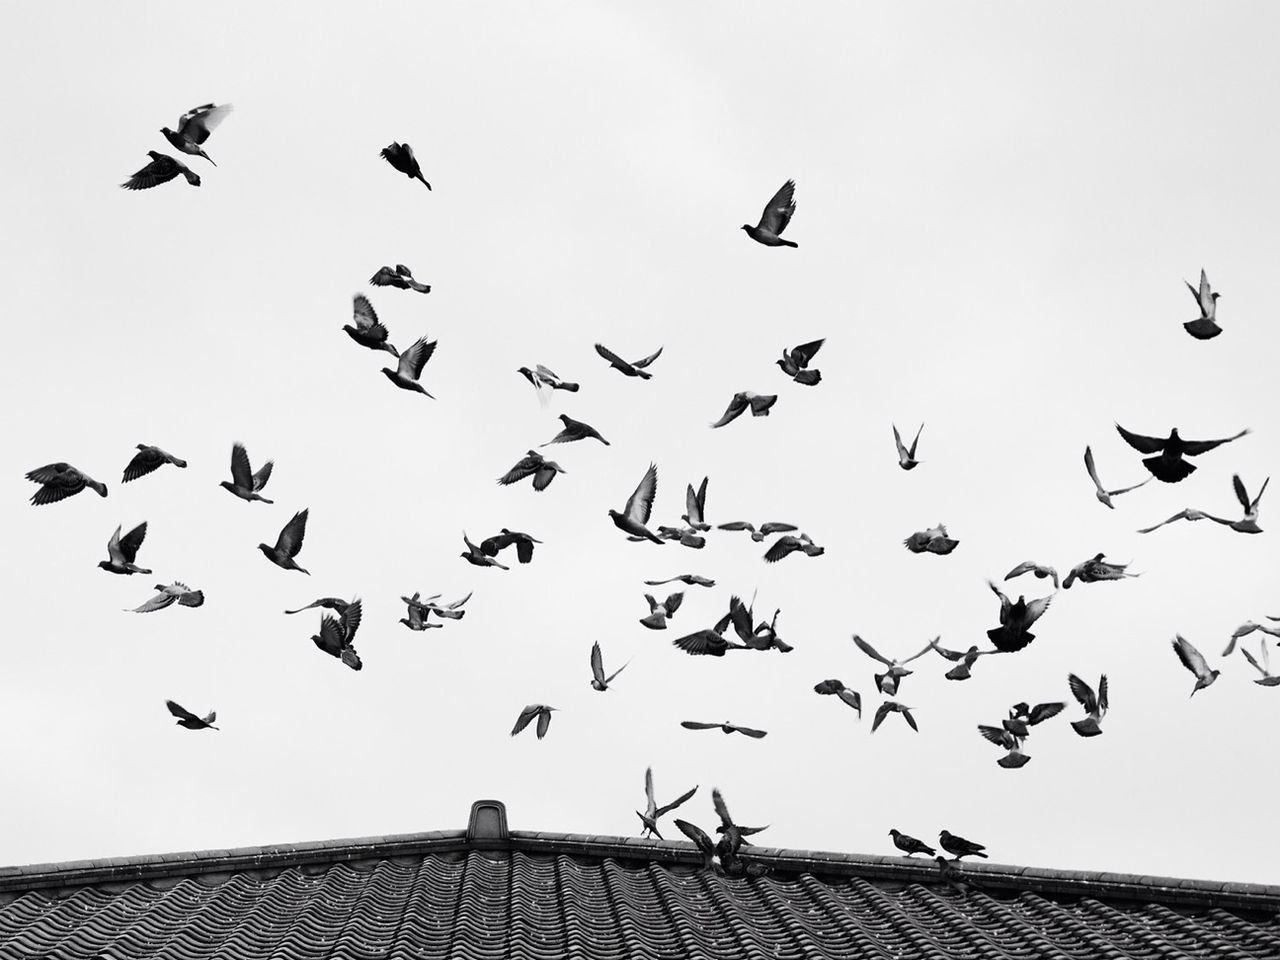 LOW ANGLE VIEW OF BIRDS FLYING OVER THE SKY